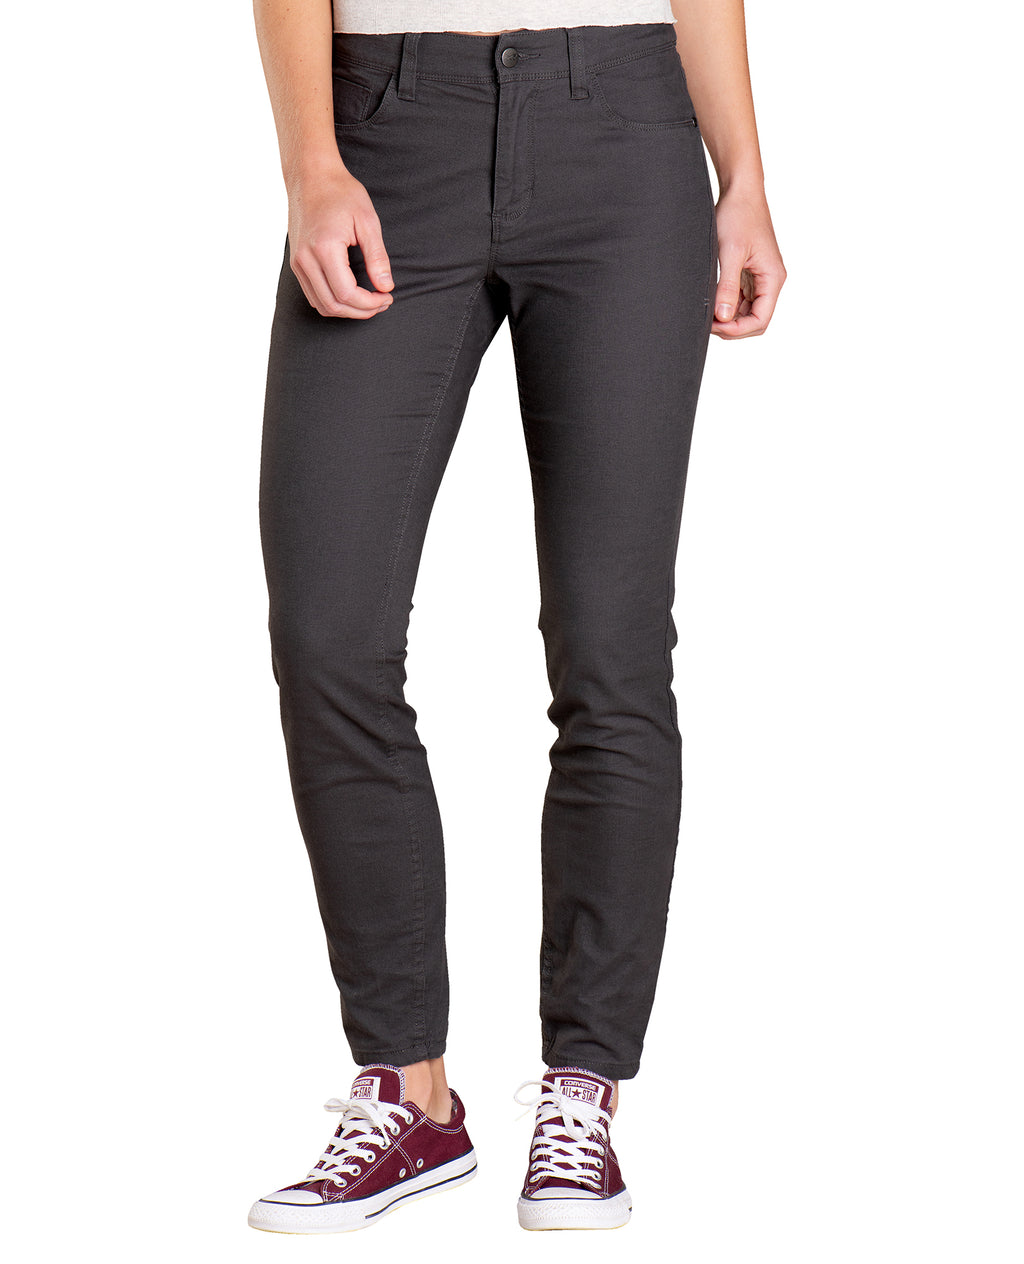 Skinny Fit Pants with 5 pockets.